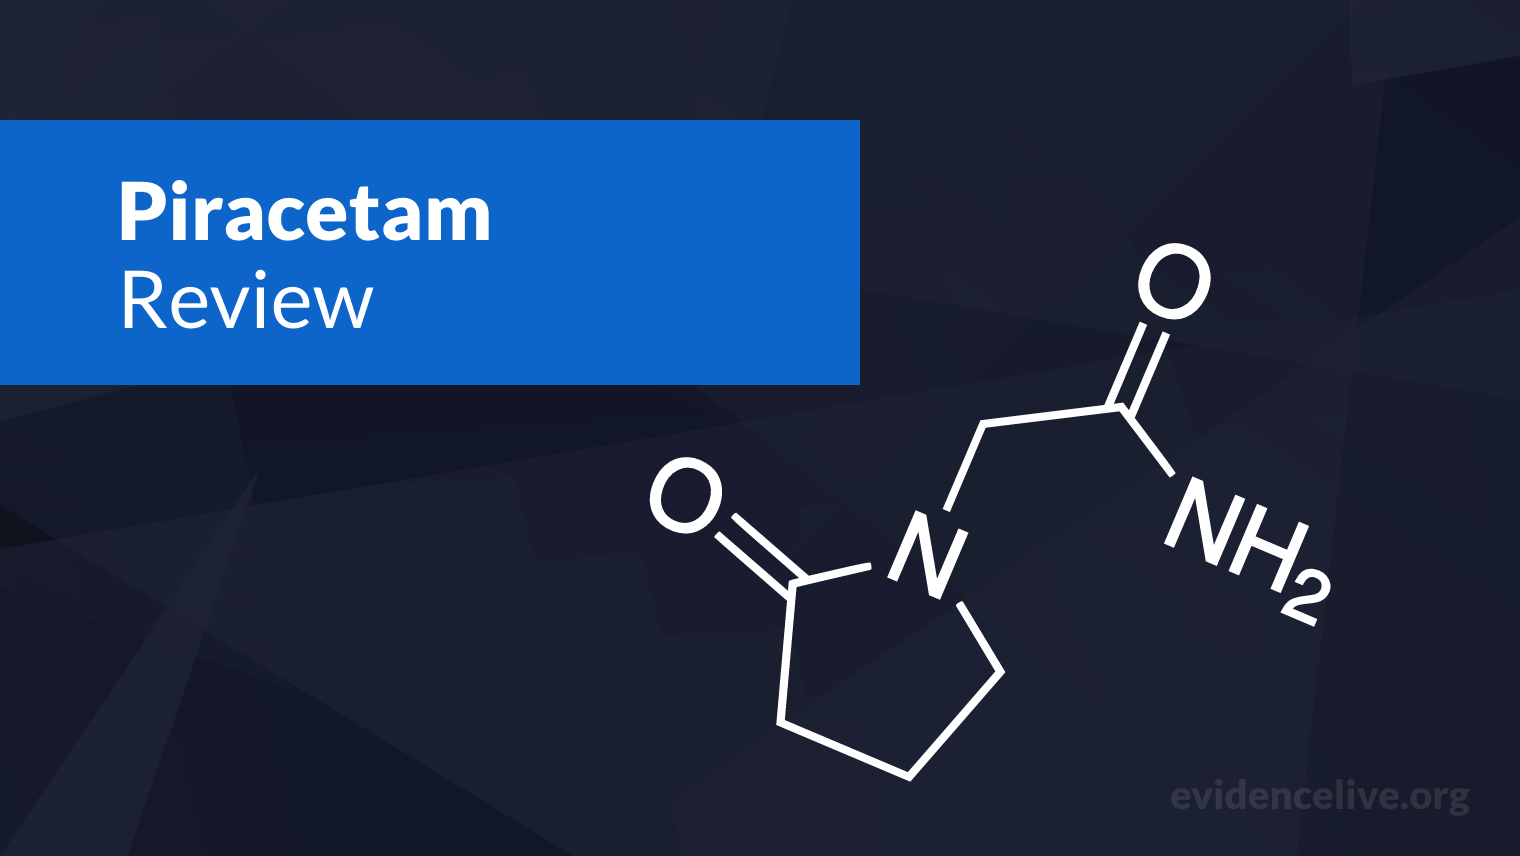 Piracetam: Benefits, Uses, Dosage, and Side Effects